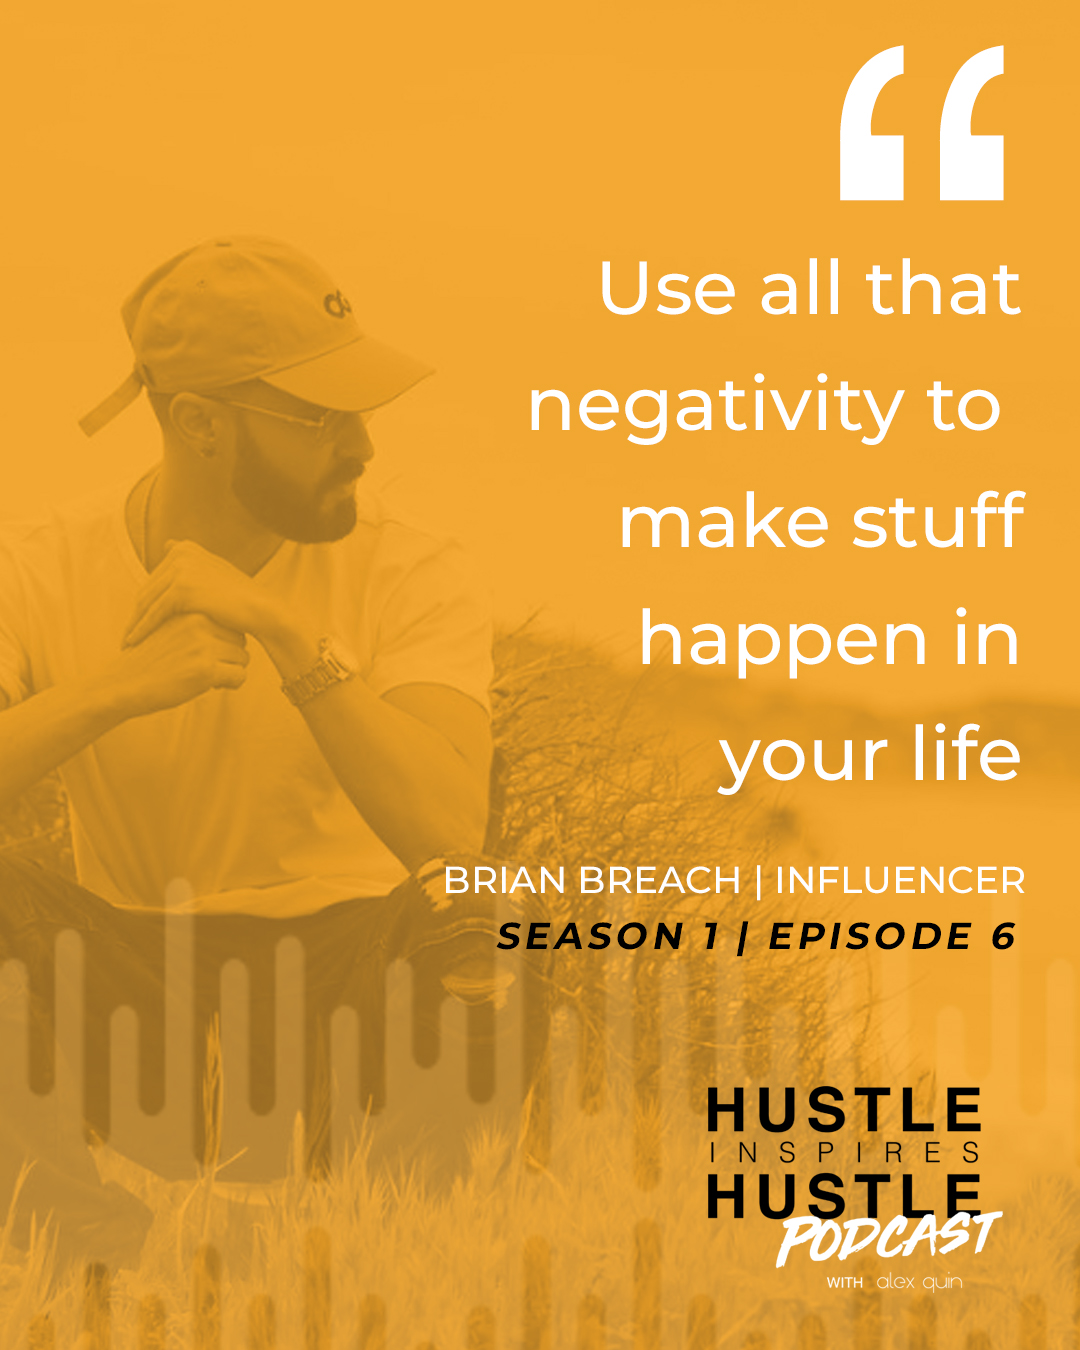 Brian Breach & Alex Quin - Hustle Inspires Hustle Podcast